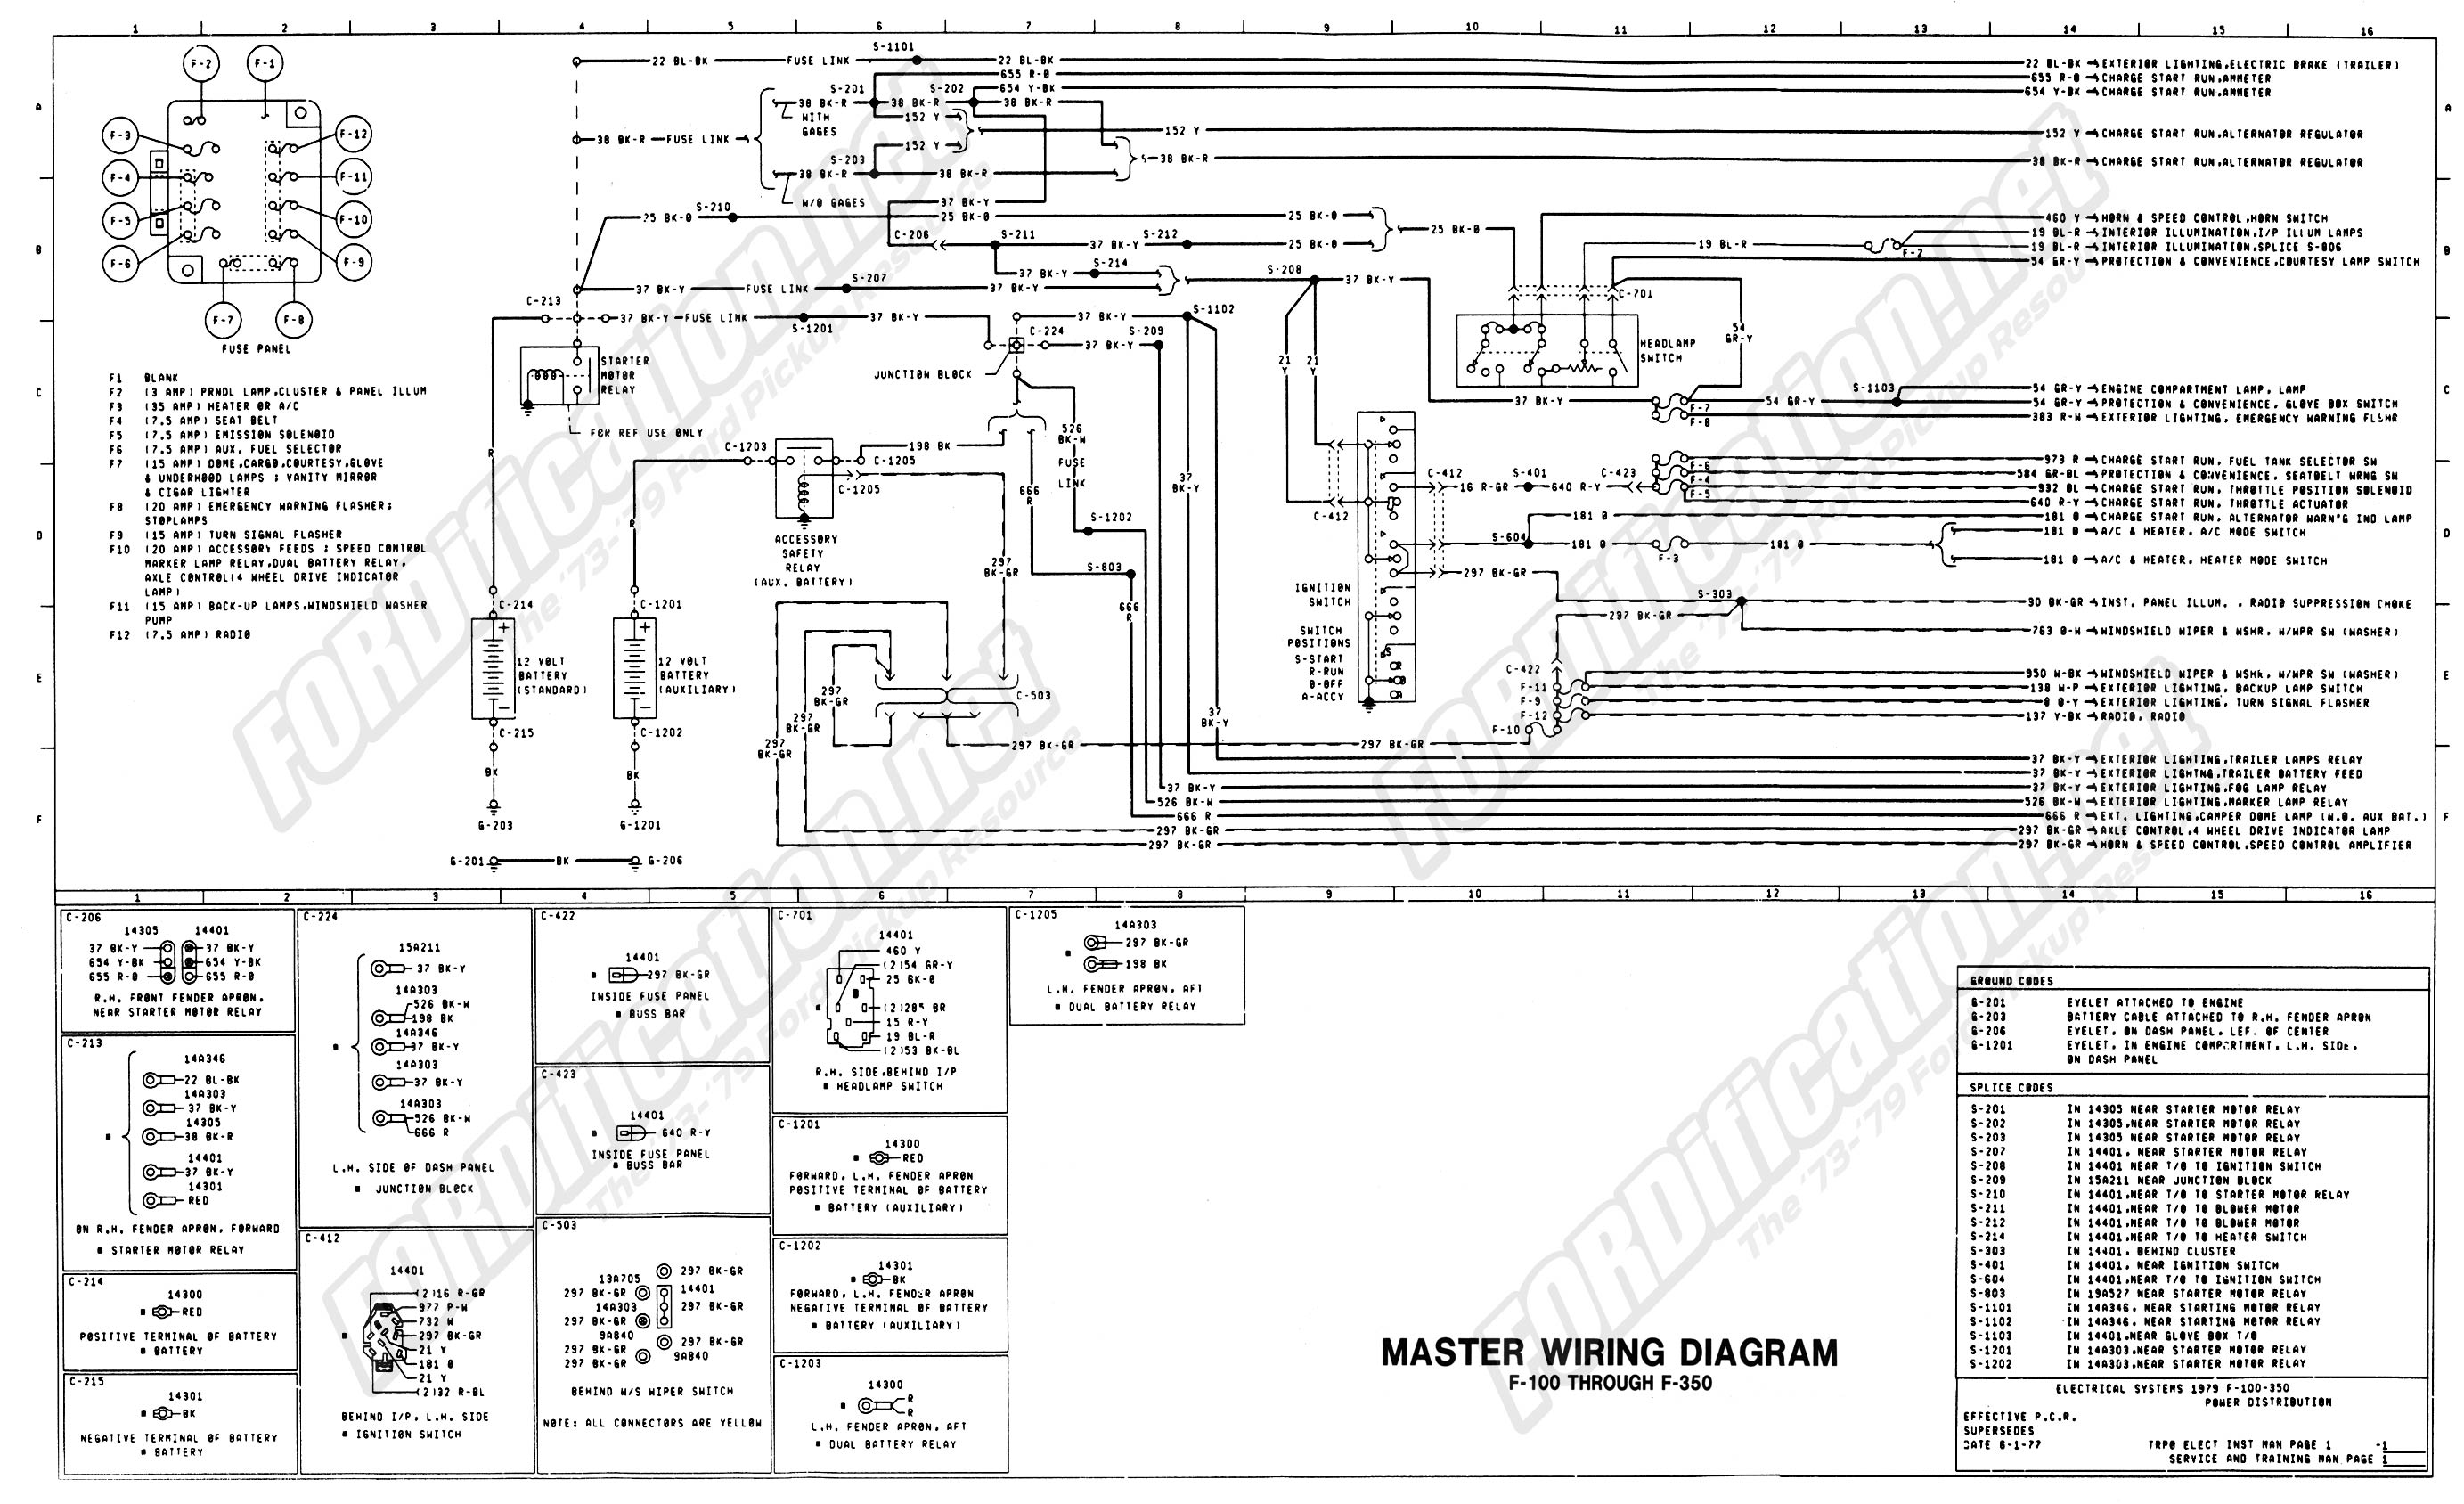 wiring_79master_1of9 1973 1979 ford truck wiring diagrams & schematics fordification net 1979 ford truck fuse box diagram at reclaimingppi.co